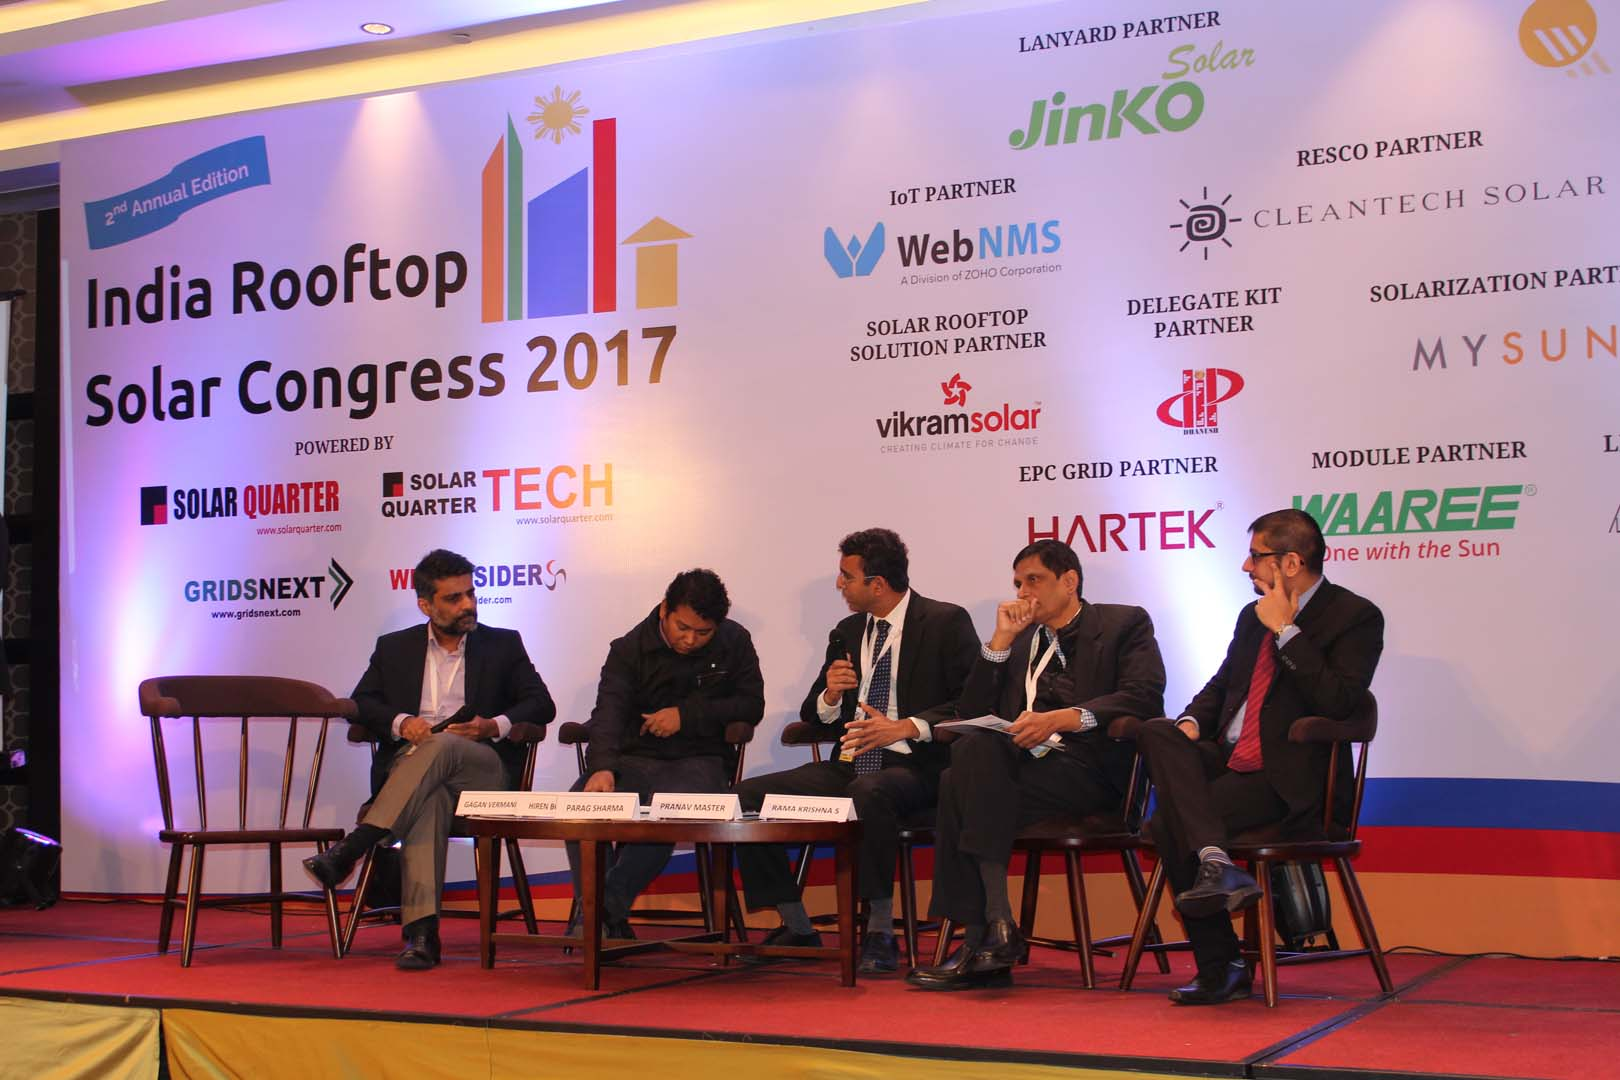 Executives from Tata Power Solar, ReNew Power, MYSUN, Crisil and an MNRE Scientist discussed India's rooftop policy and outlook at the India Rooftop Solar Congress 2017. Credit: Tom Kenning